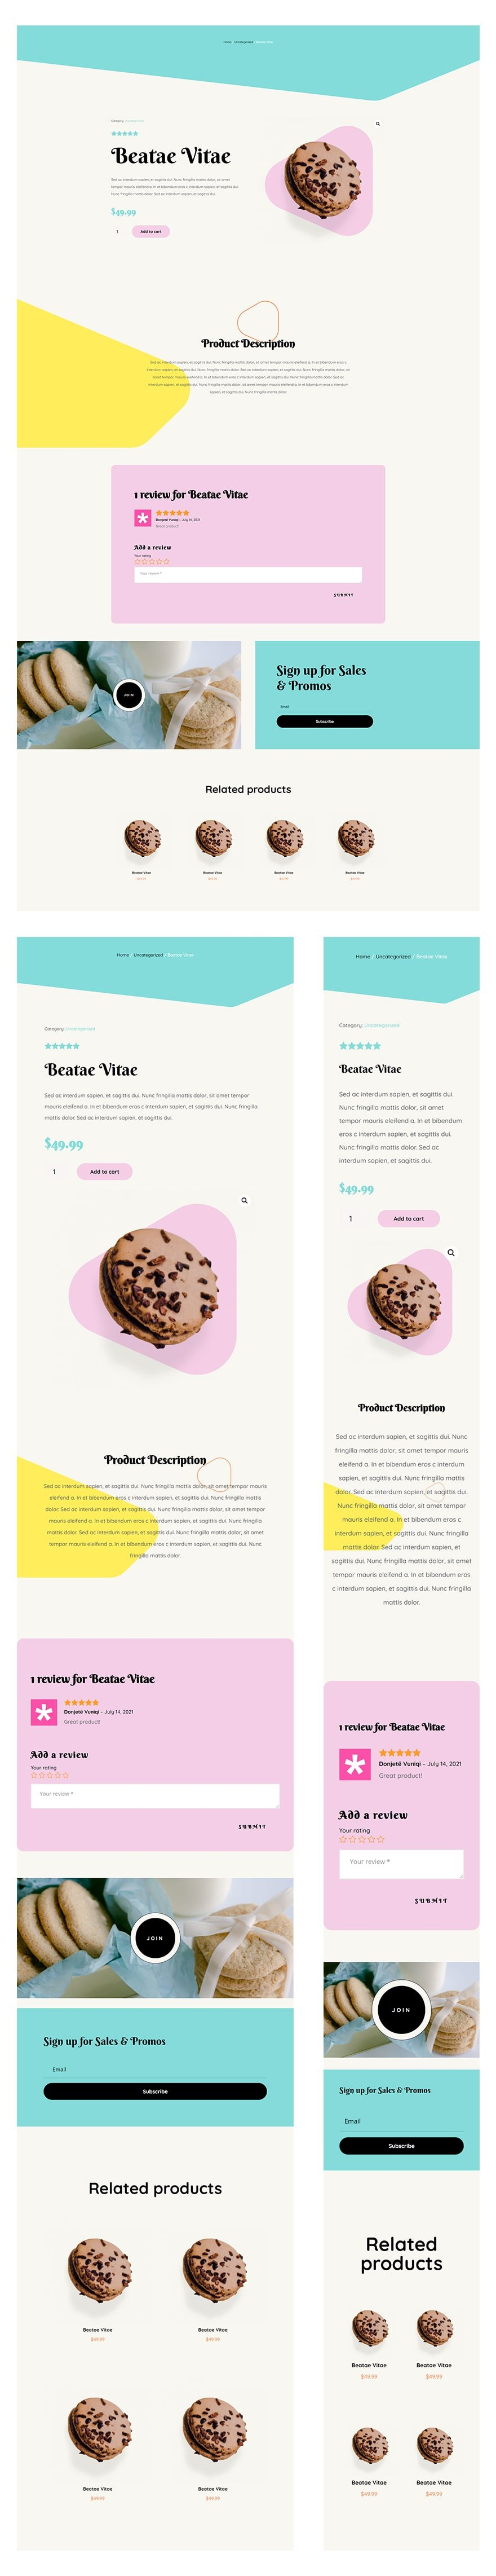 download-a-free-product-page-template-for-divis-homemade-cookies-layout-pack Download a FREE Product Page Template for Divi's Homemade Cookies Layout Pack